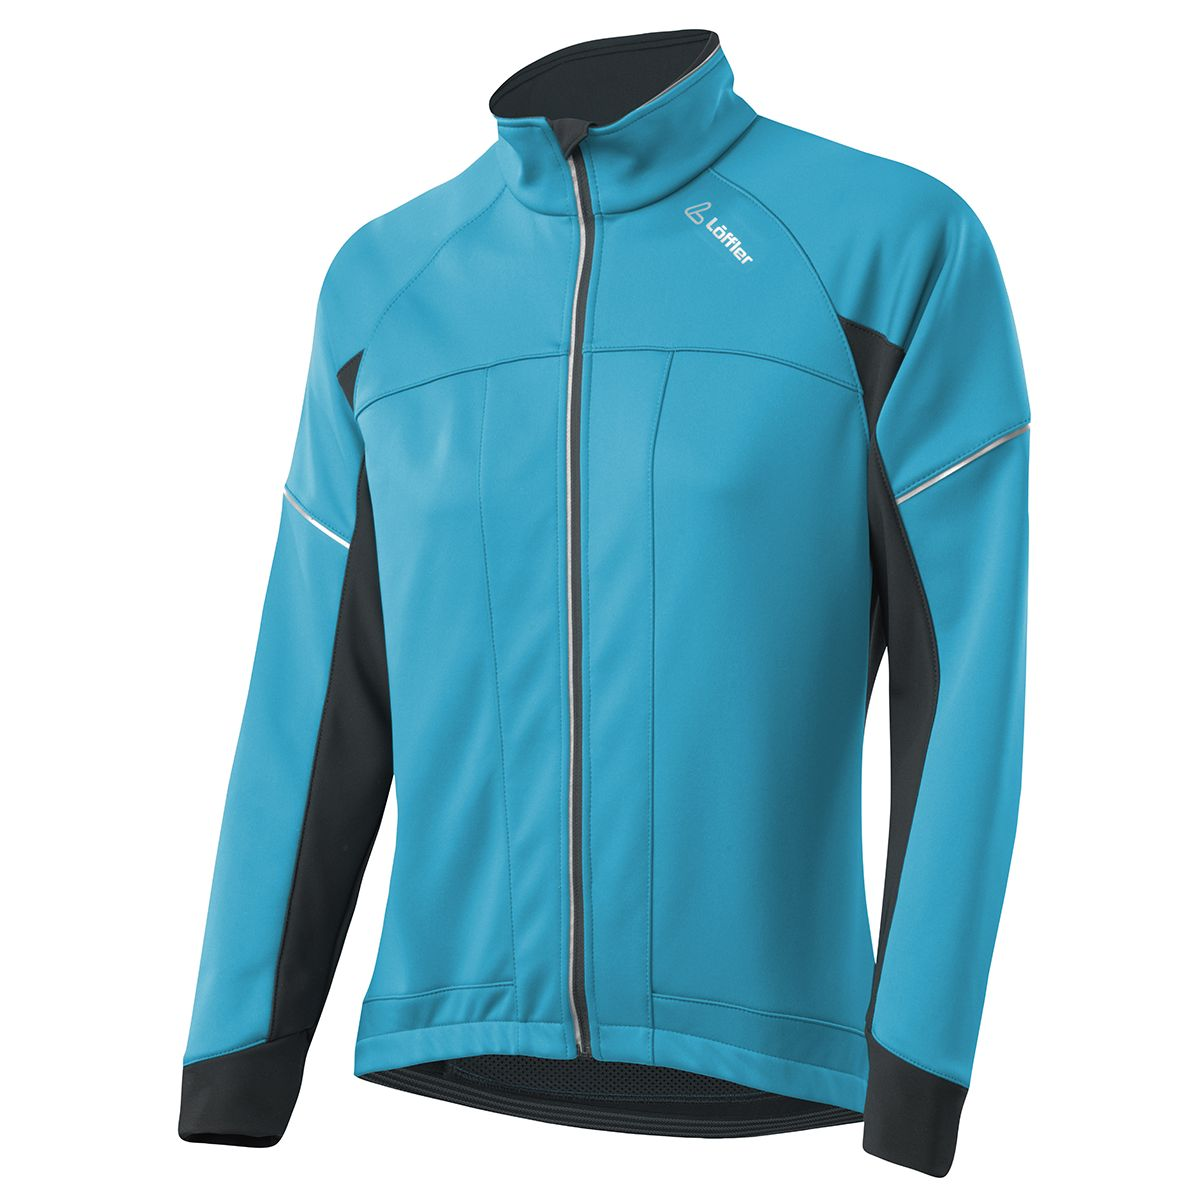 WS SOFTSHELL WARM cycling jacket for women